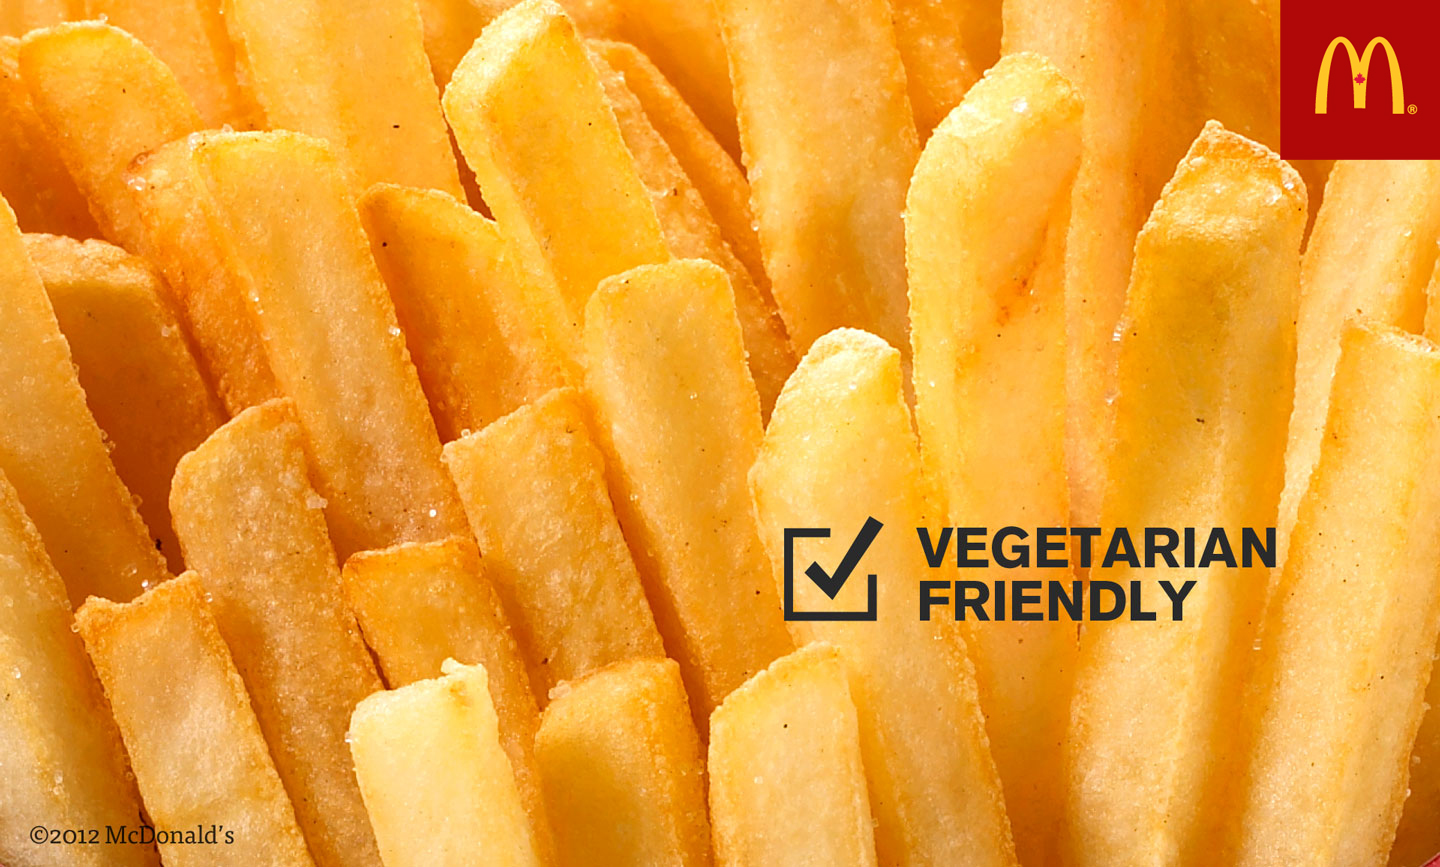 How does McDo make their Tomador Vegetable?